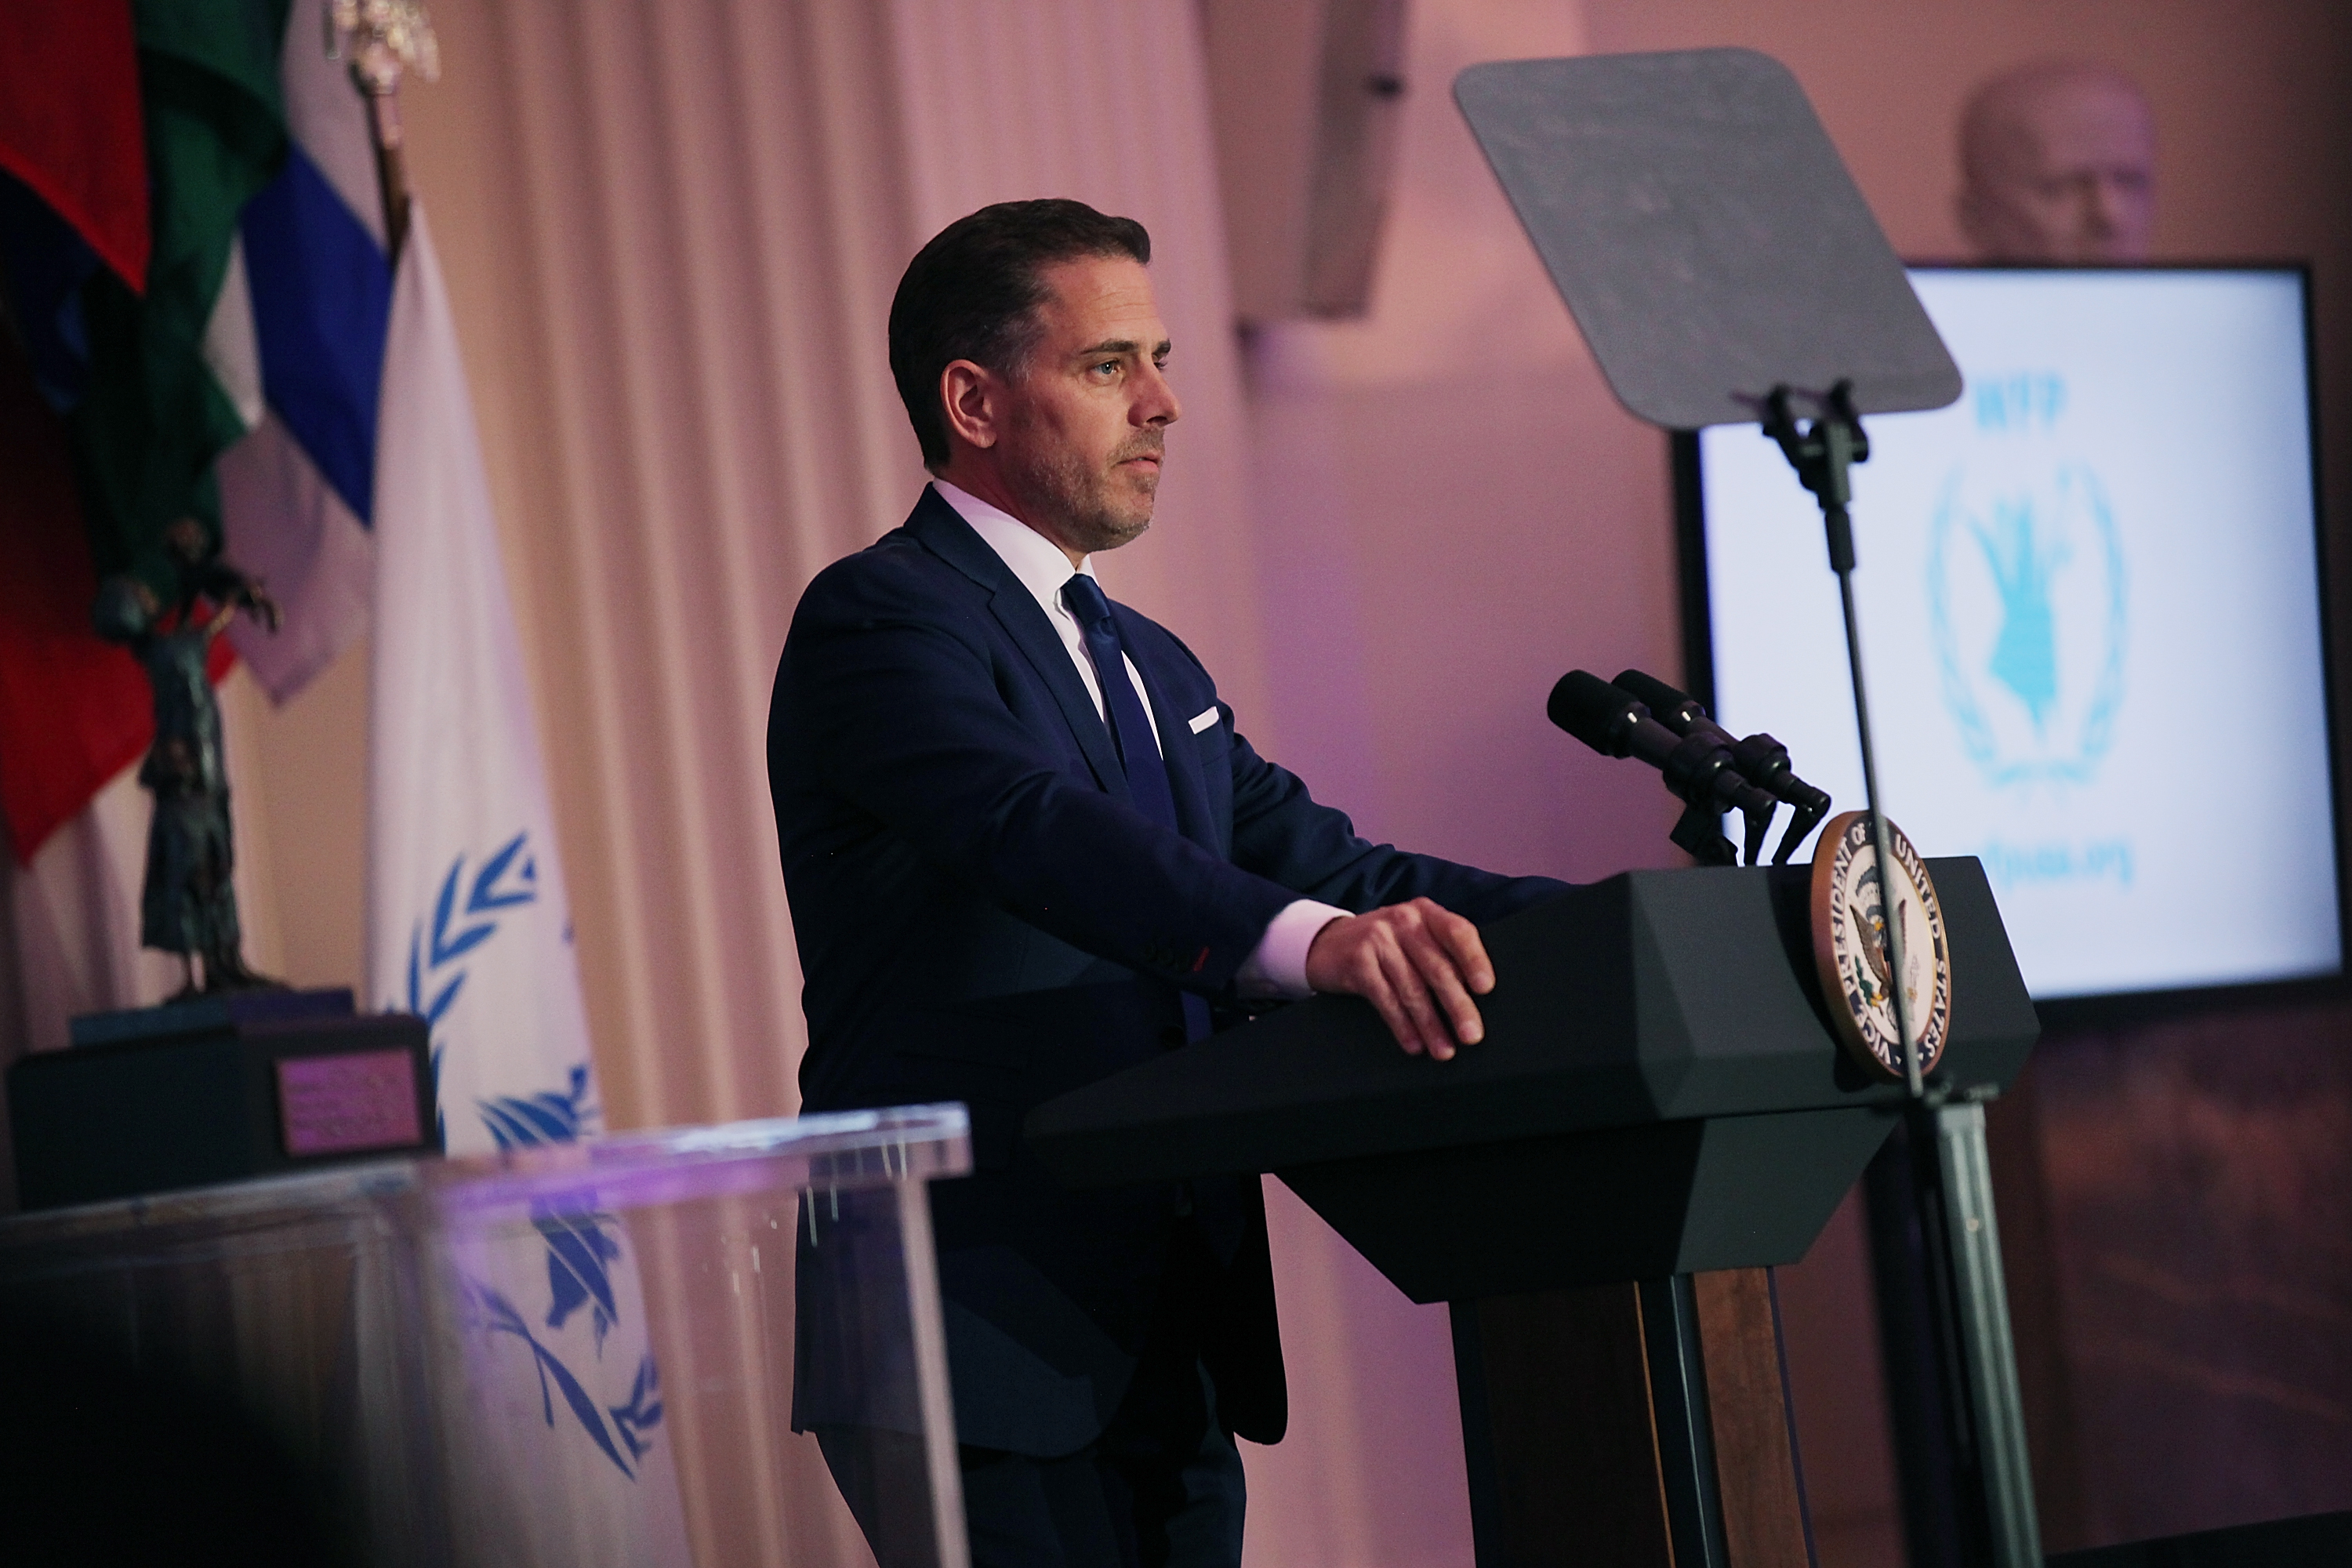 Hunter Biden's Laptop Probe Referred to FBI, Delaware State Police Say thumbnail